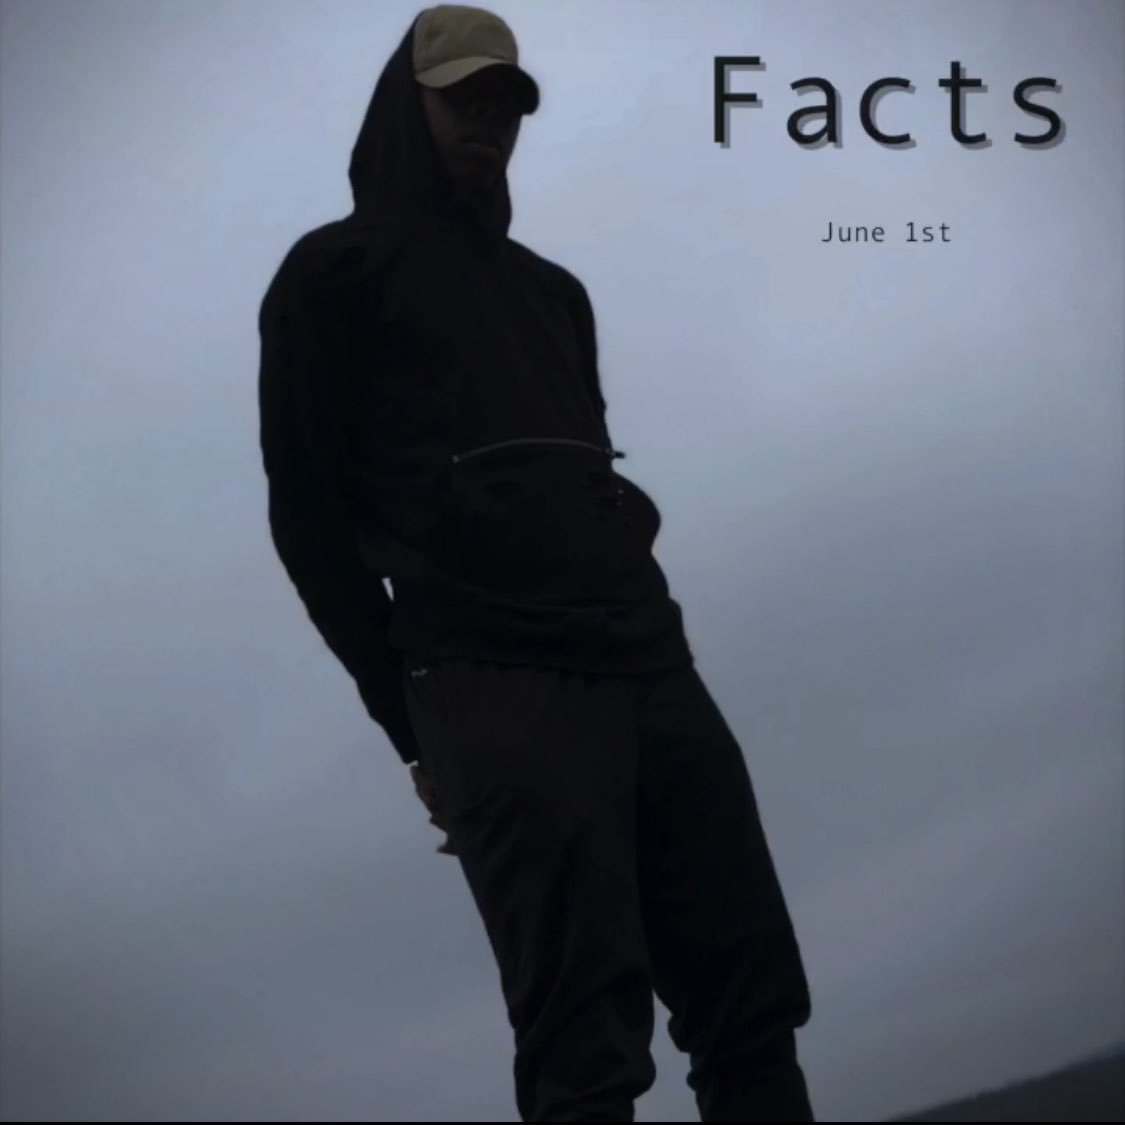 """""""Facts"""" by James Savage drops June 1st on all streaming platforms! Don't miss it! <br>http://pic.twitter.com/ZZ69gvfMnO"""